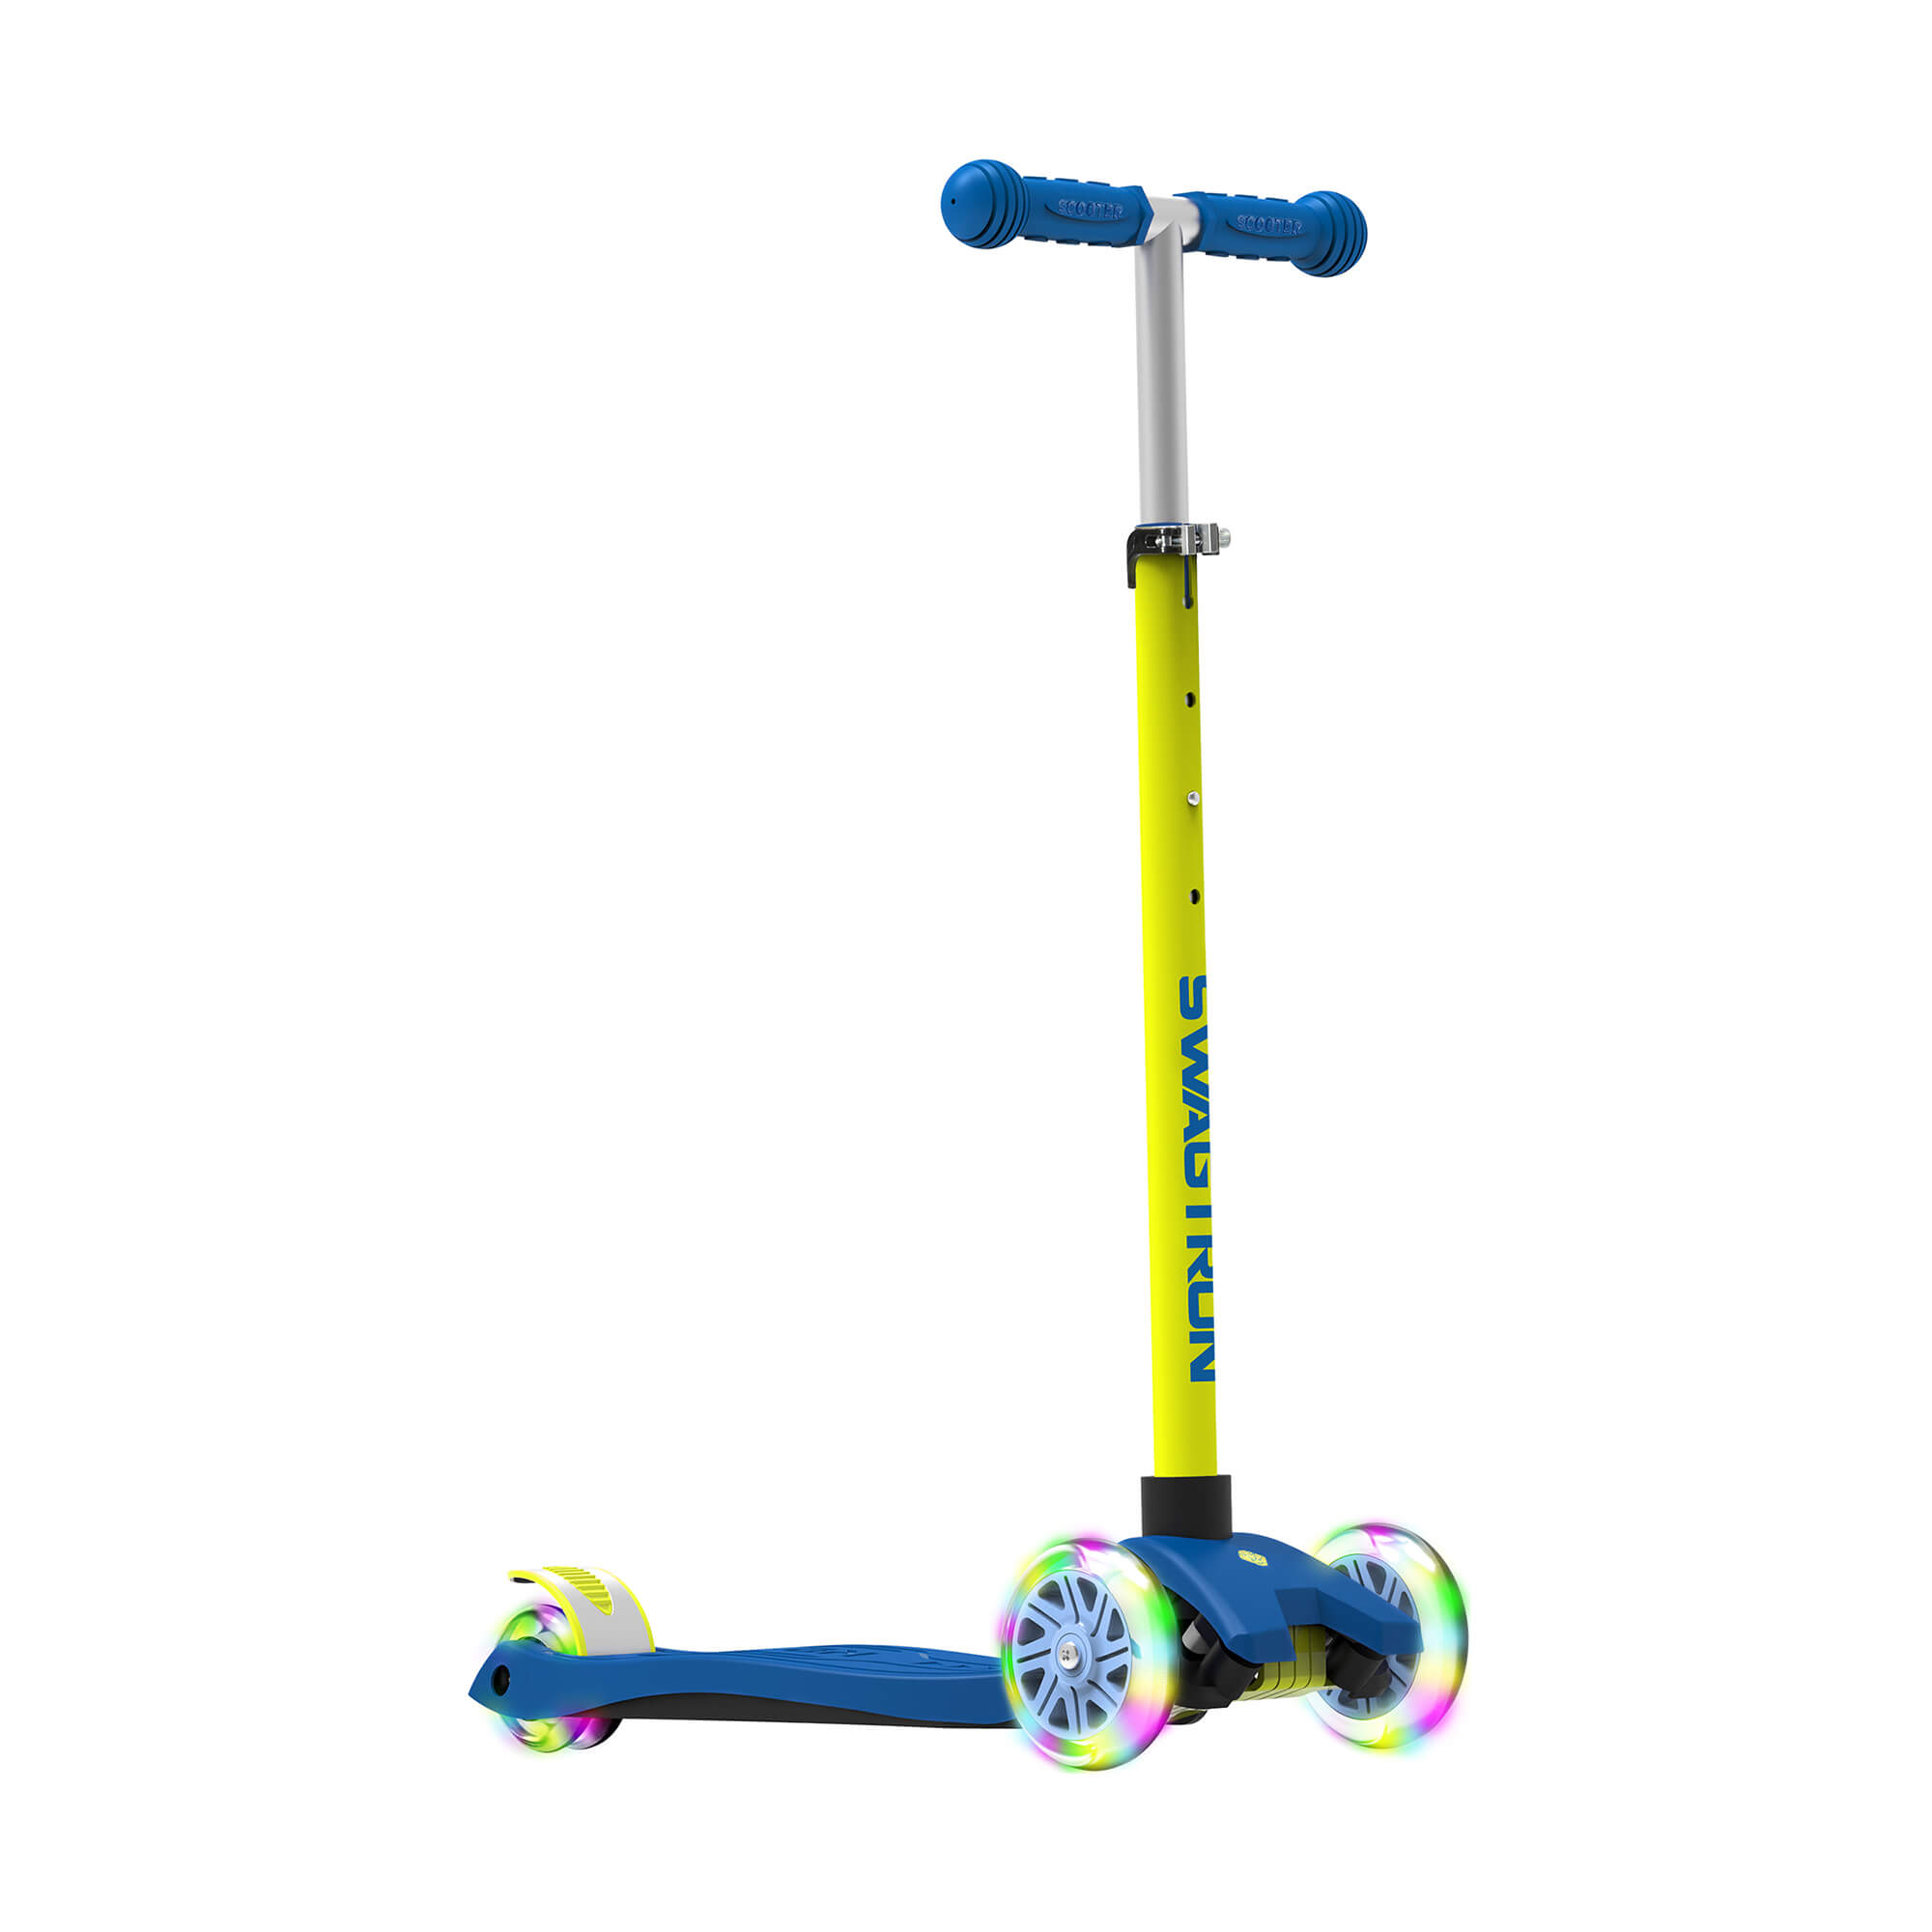 K5 Kickscooter with light-up 3 wheels for kids and toddlers